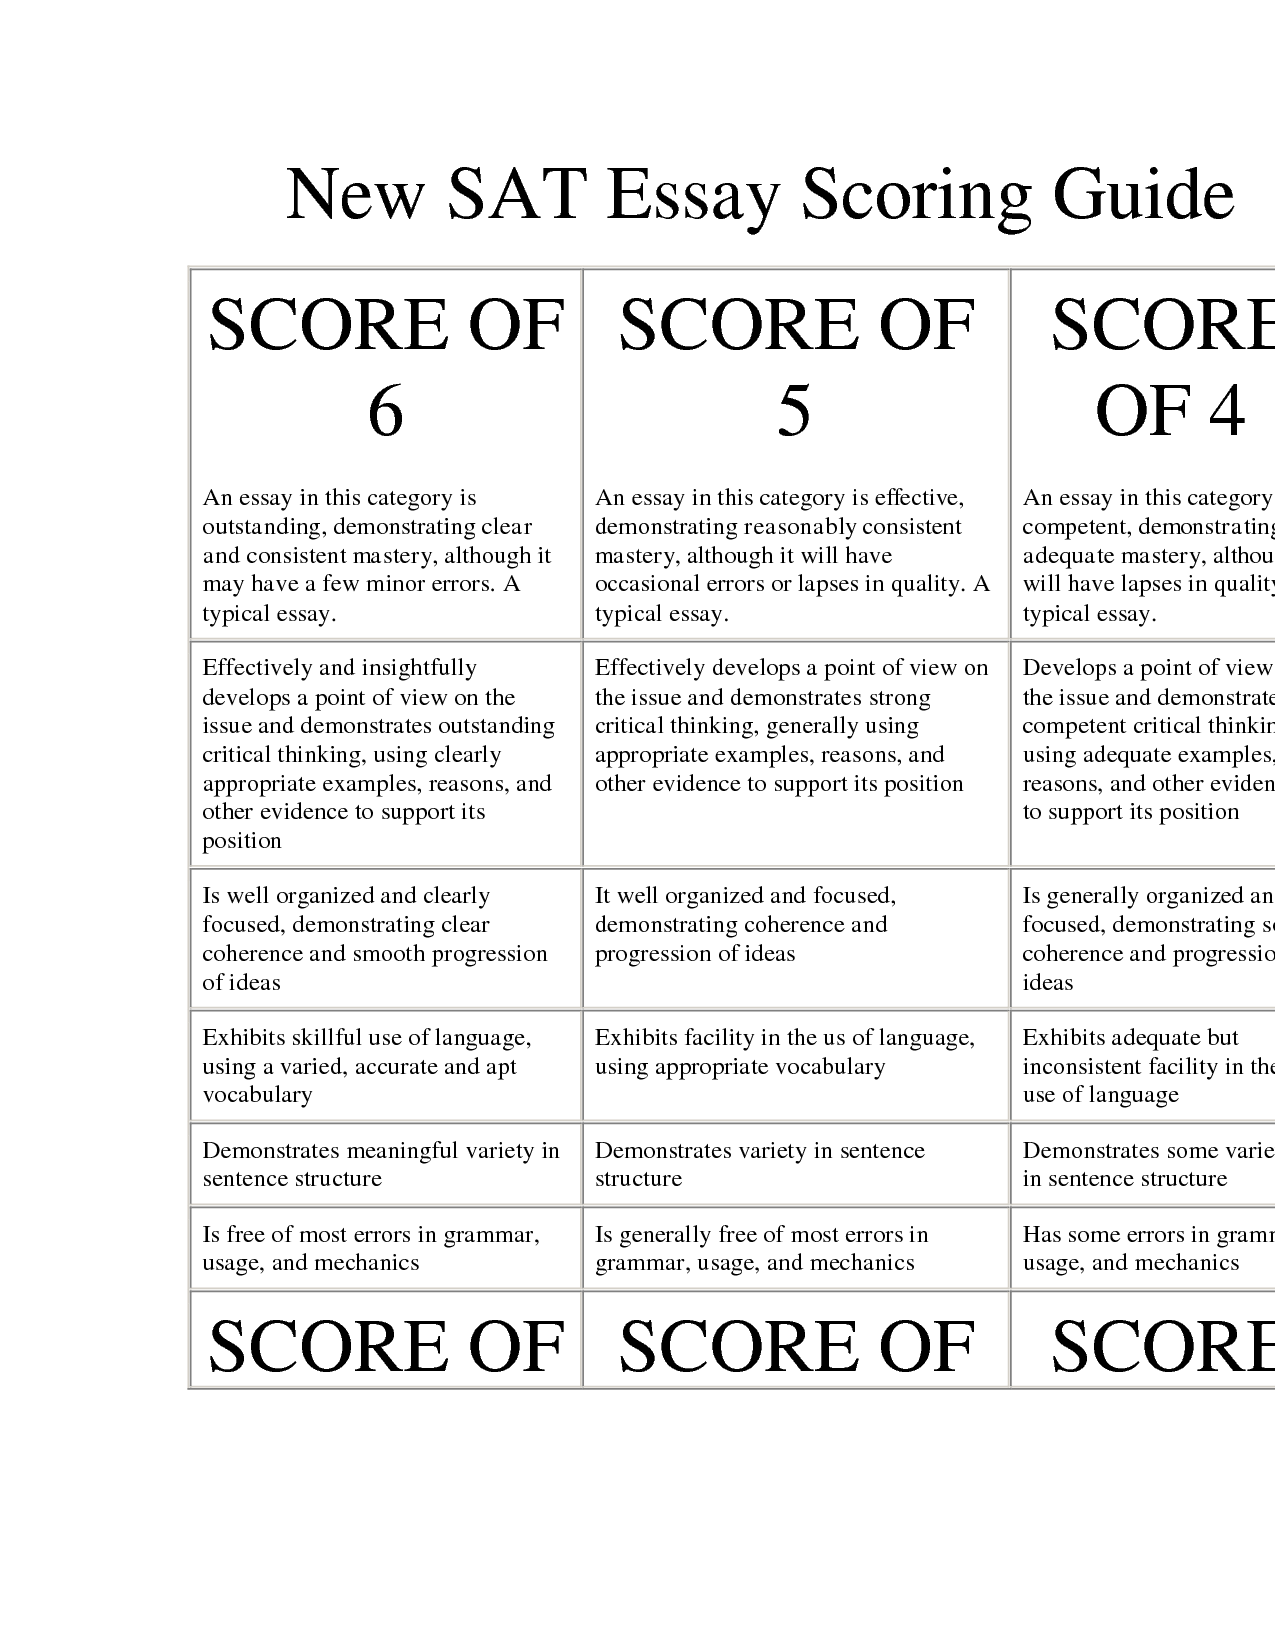 sat essay scoring rubric chart To score the new sat essay, scorers will use this rubric, which describes characteristics shared by essays earning the same score point in each category.